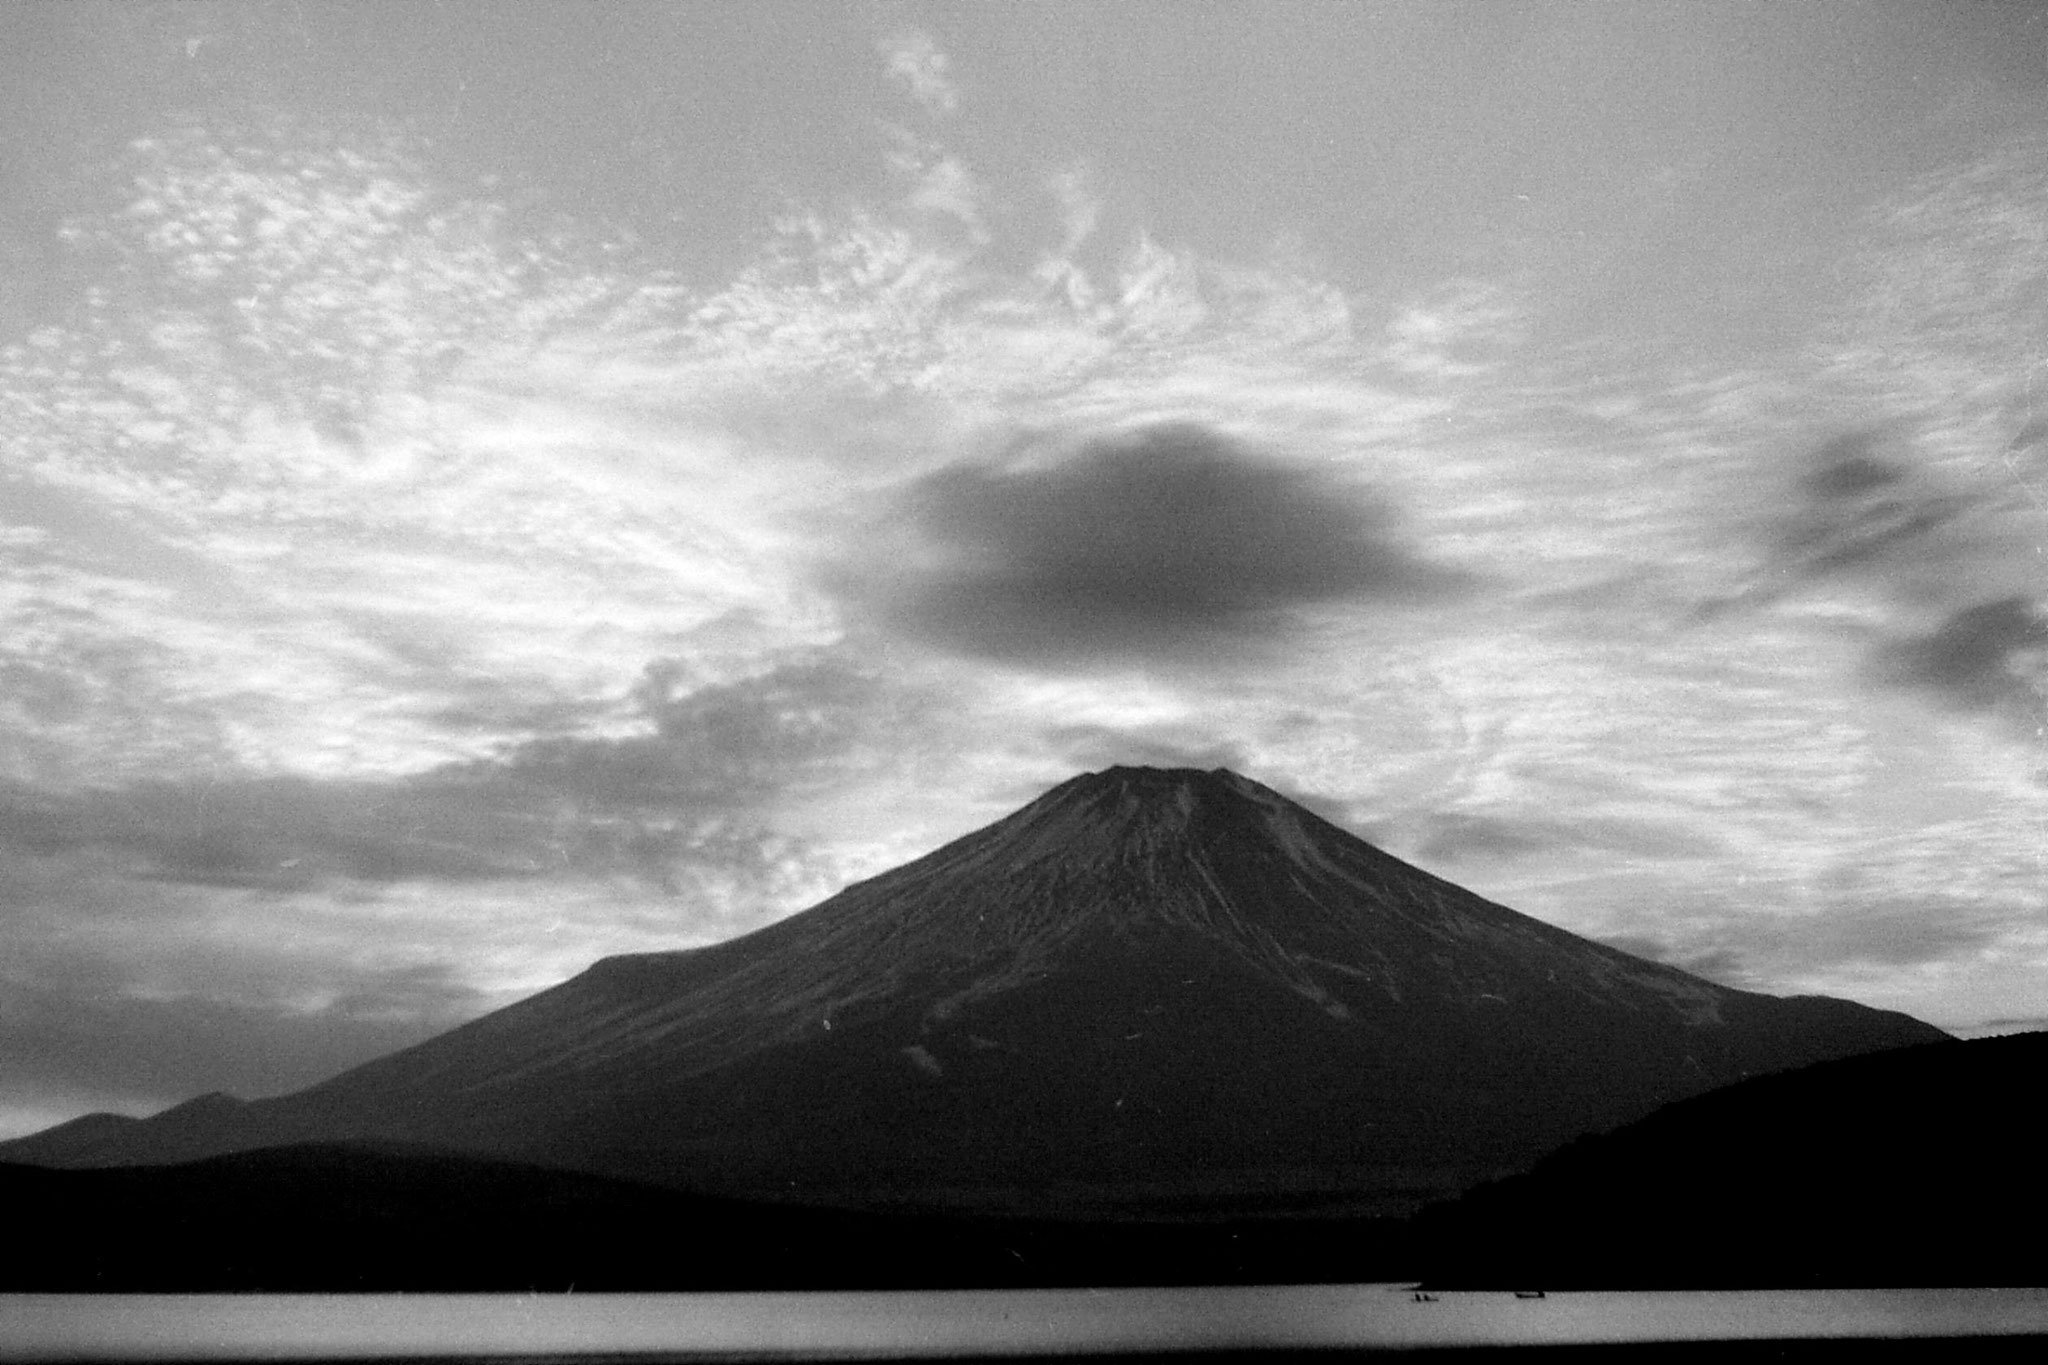 29/12/1988: 31: Mt Fuji and Five Lakes area